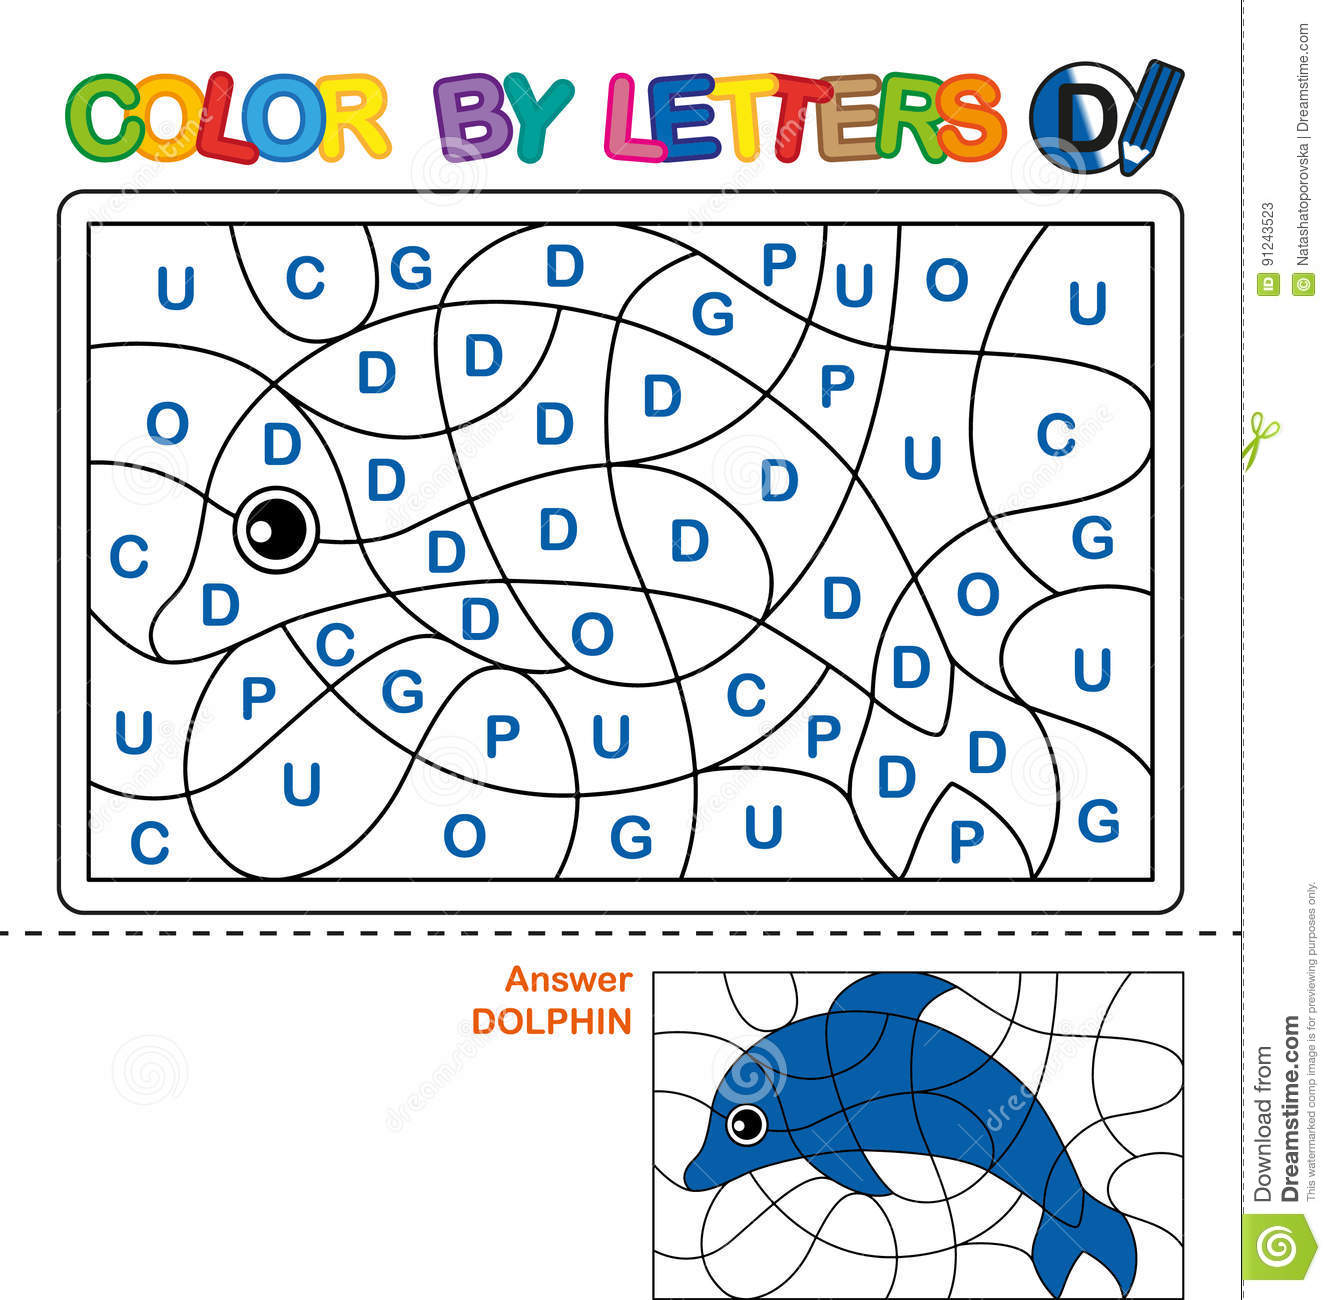 Color by letters. Learning the capital letters of the alphabet. Puzzle for children. Letter D. Dolphin. Preschool Education.